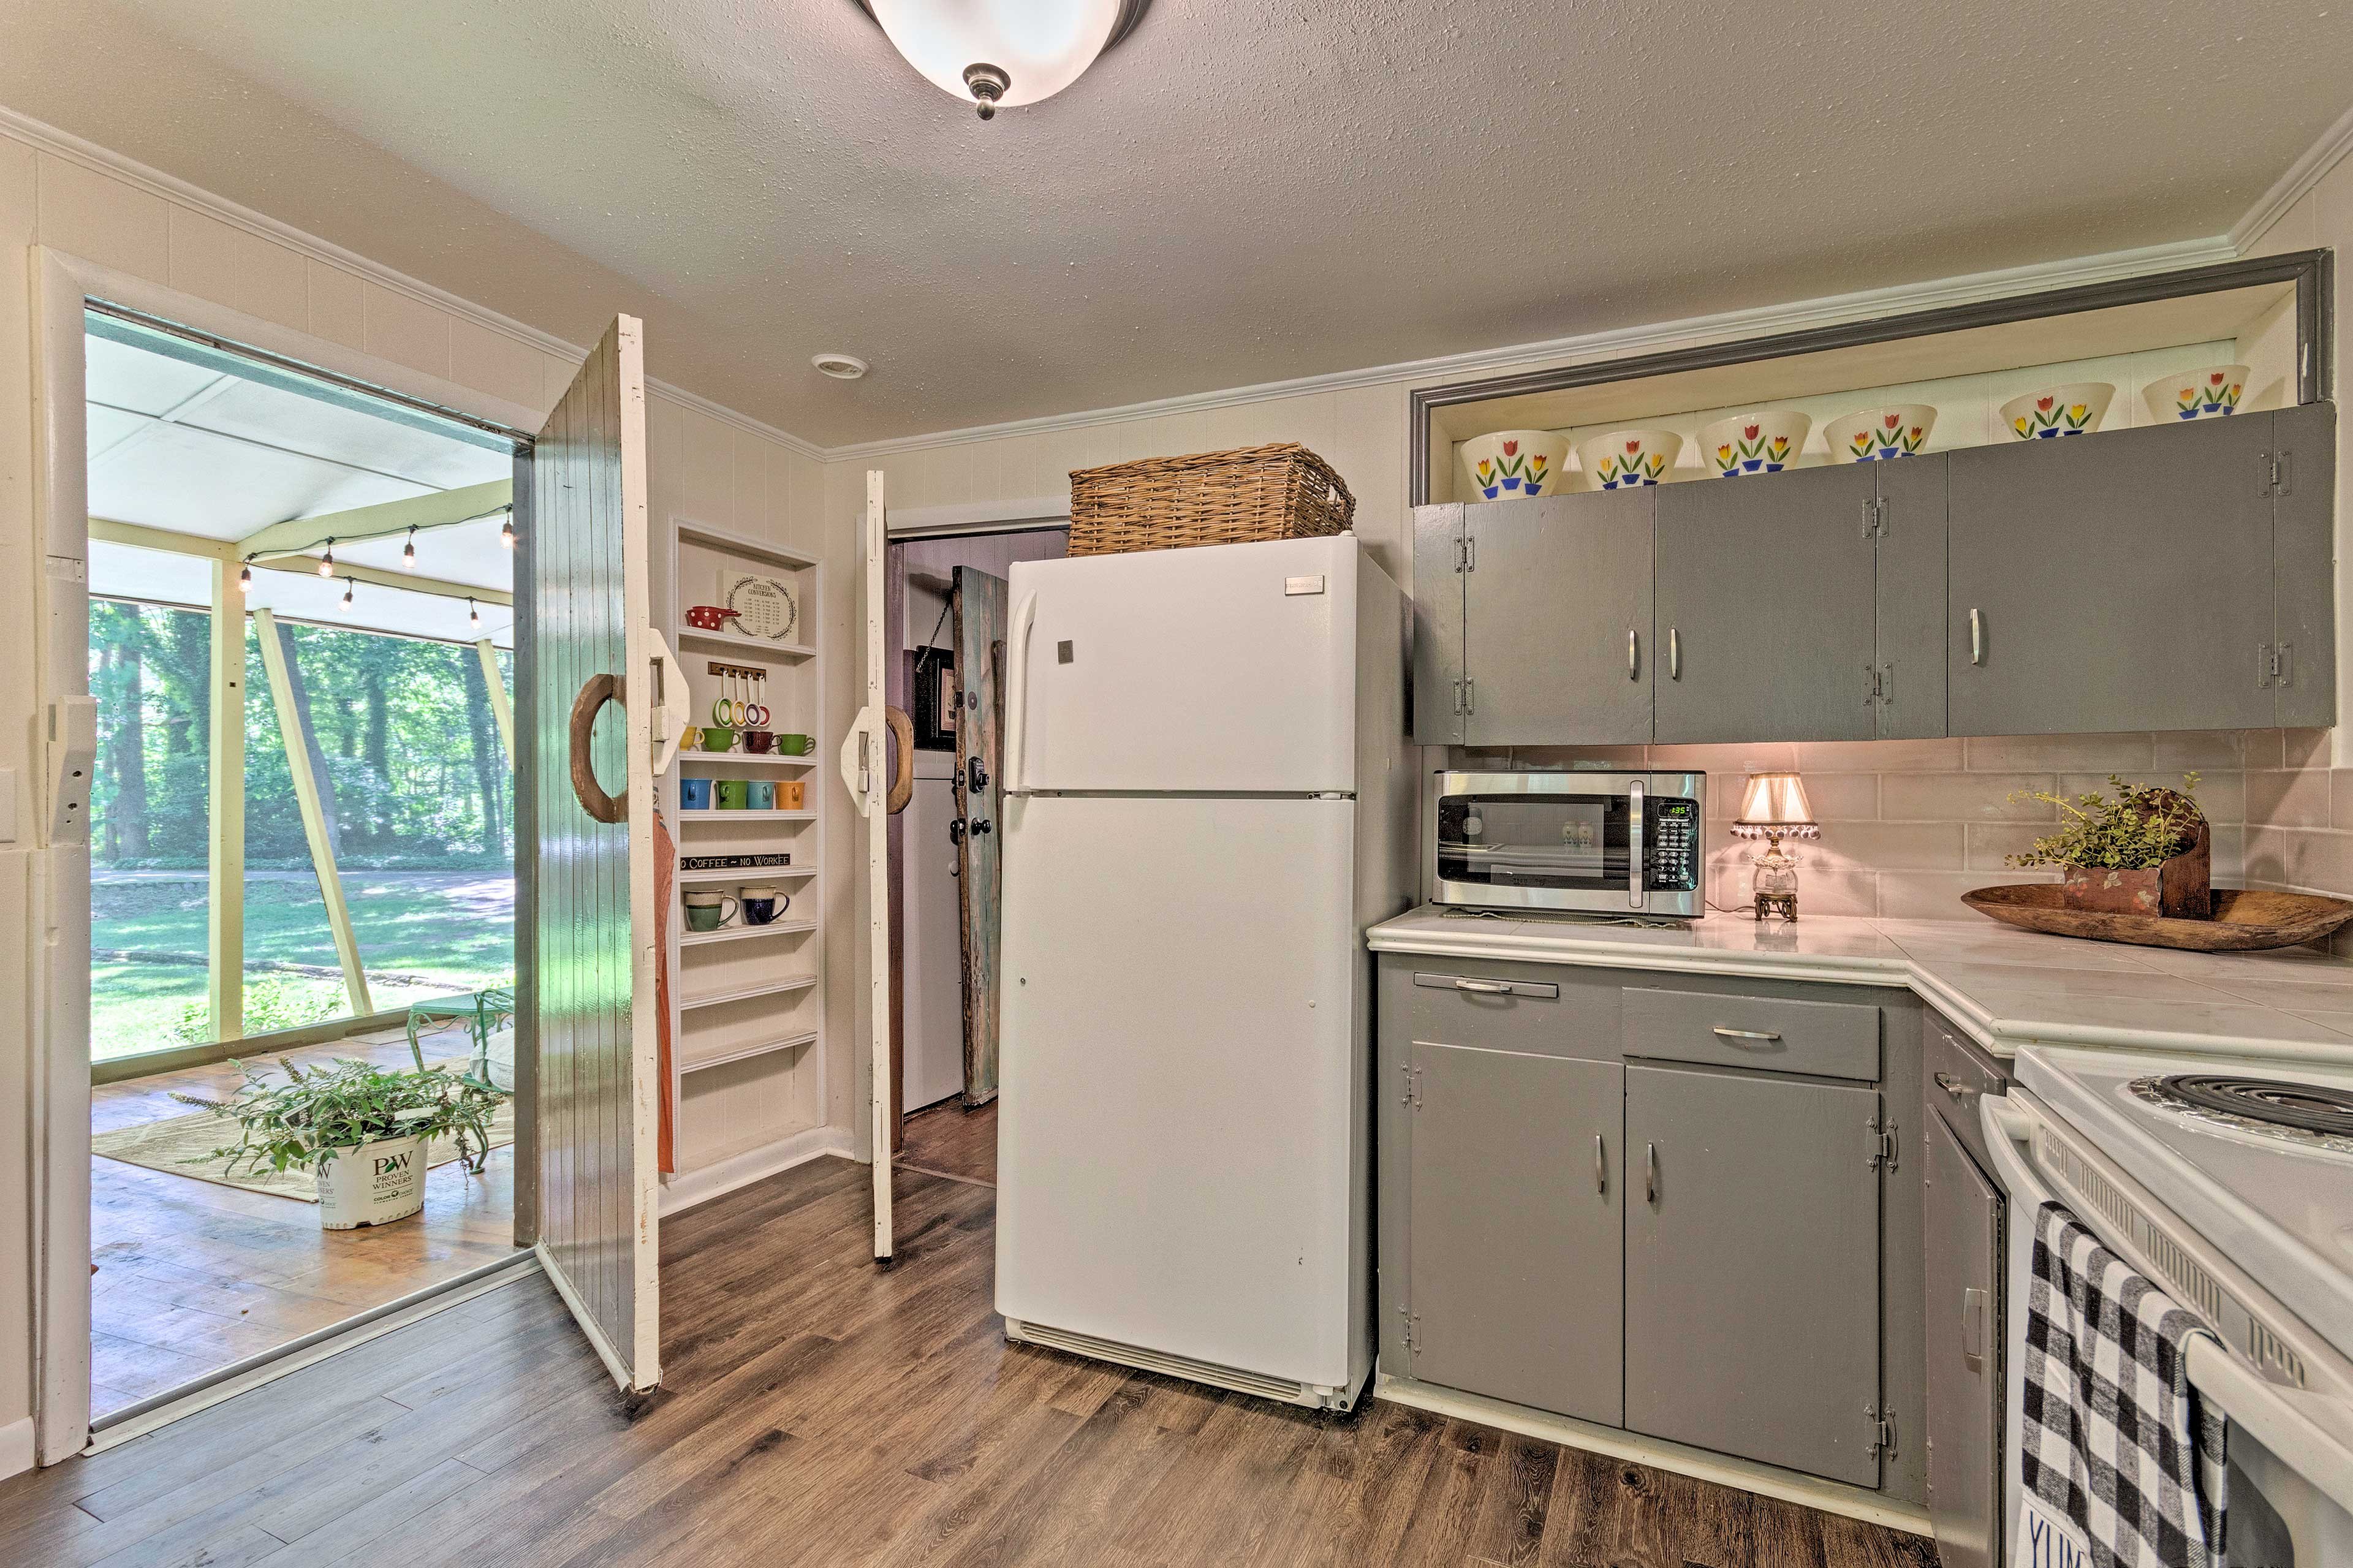 The kitchen is accessible just through the open doorway.